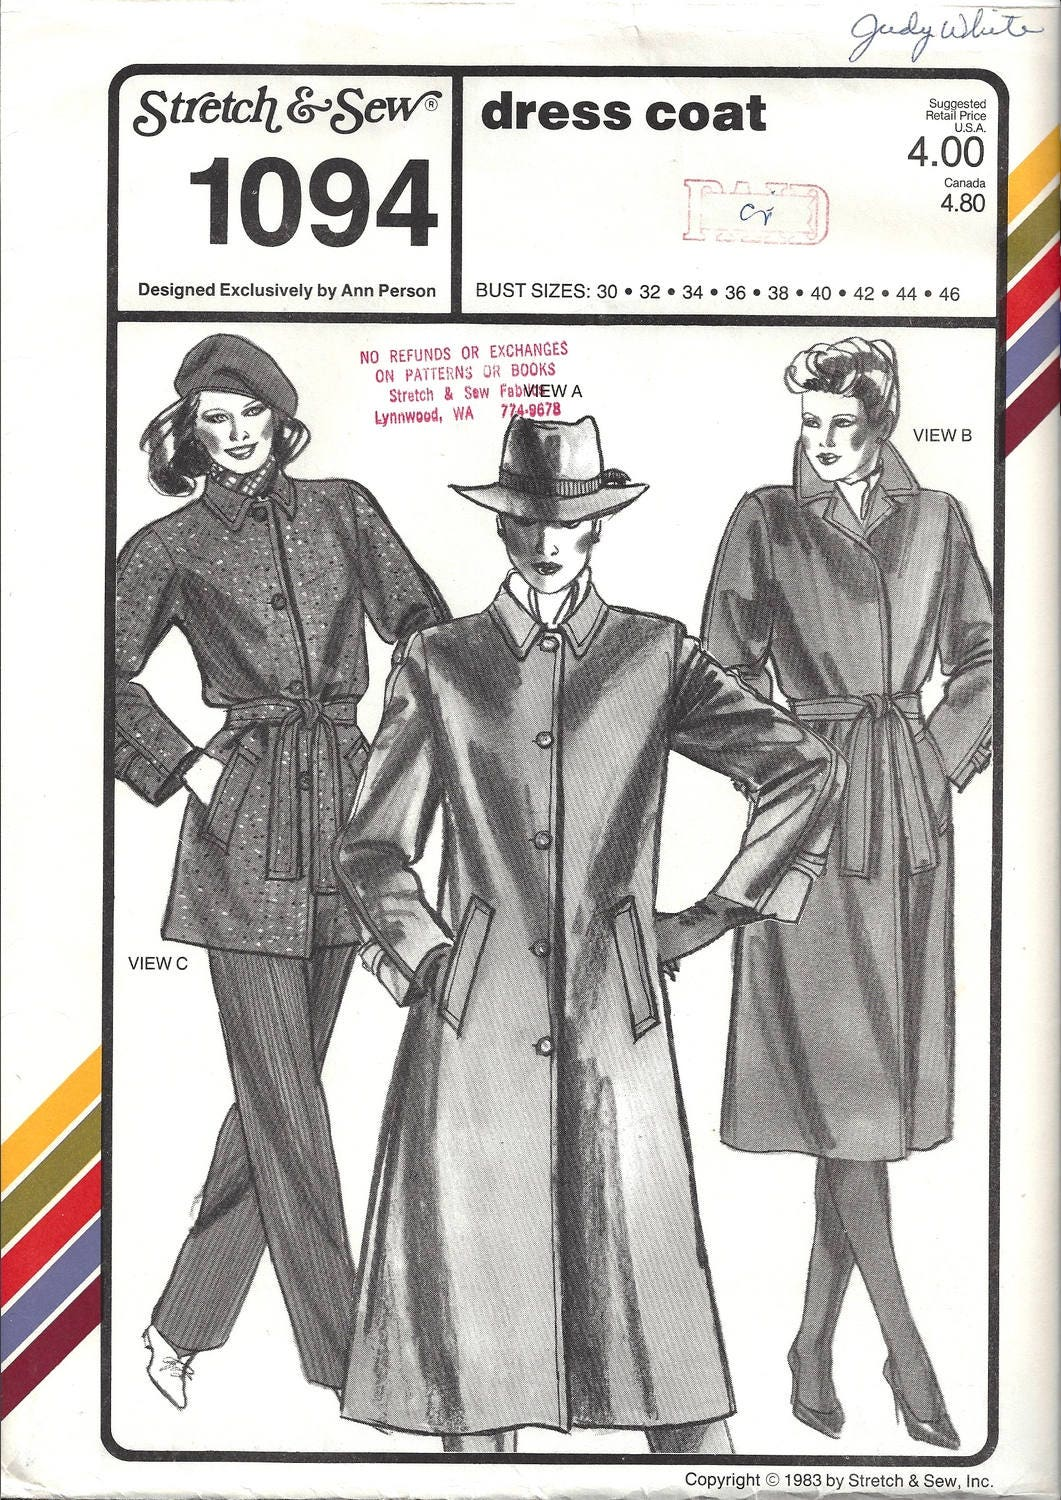 Stretch & Sew 1094 Sewing Pattern Ladies Dress Coat sz 30 - 46 Bust ...